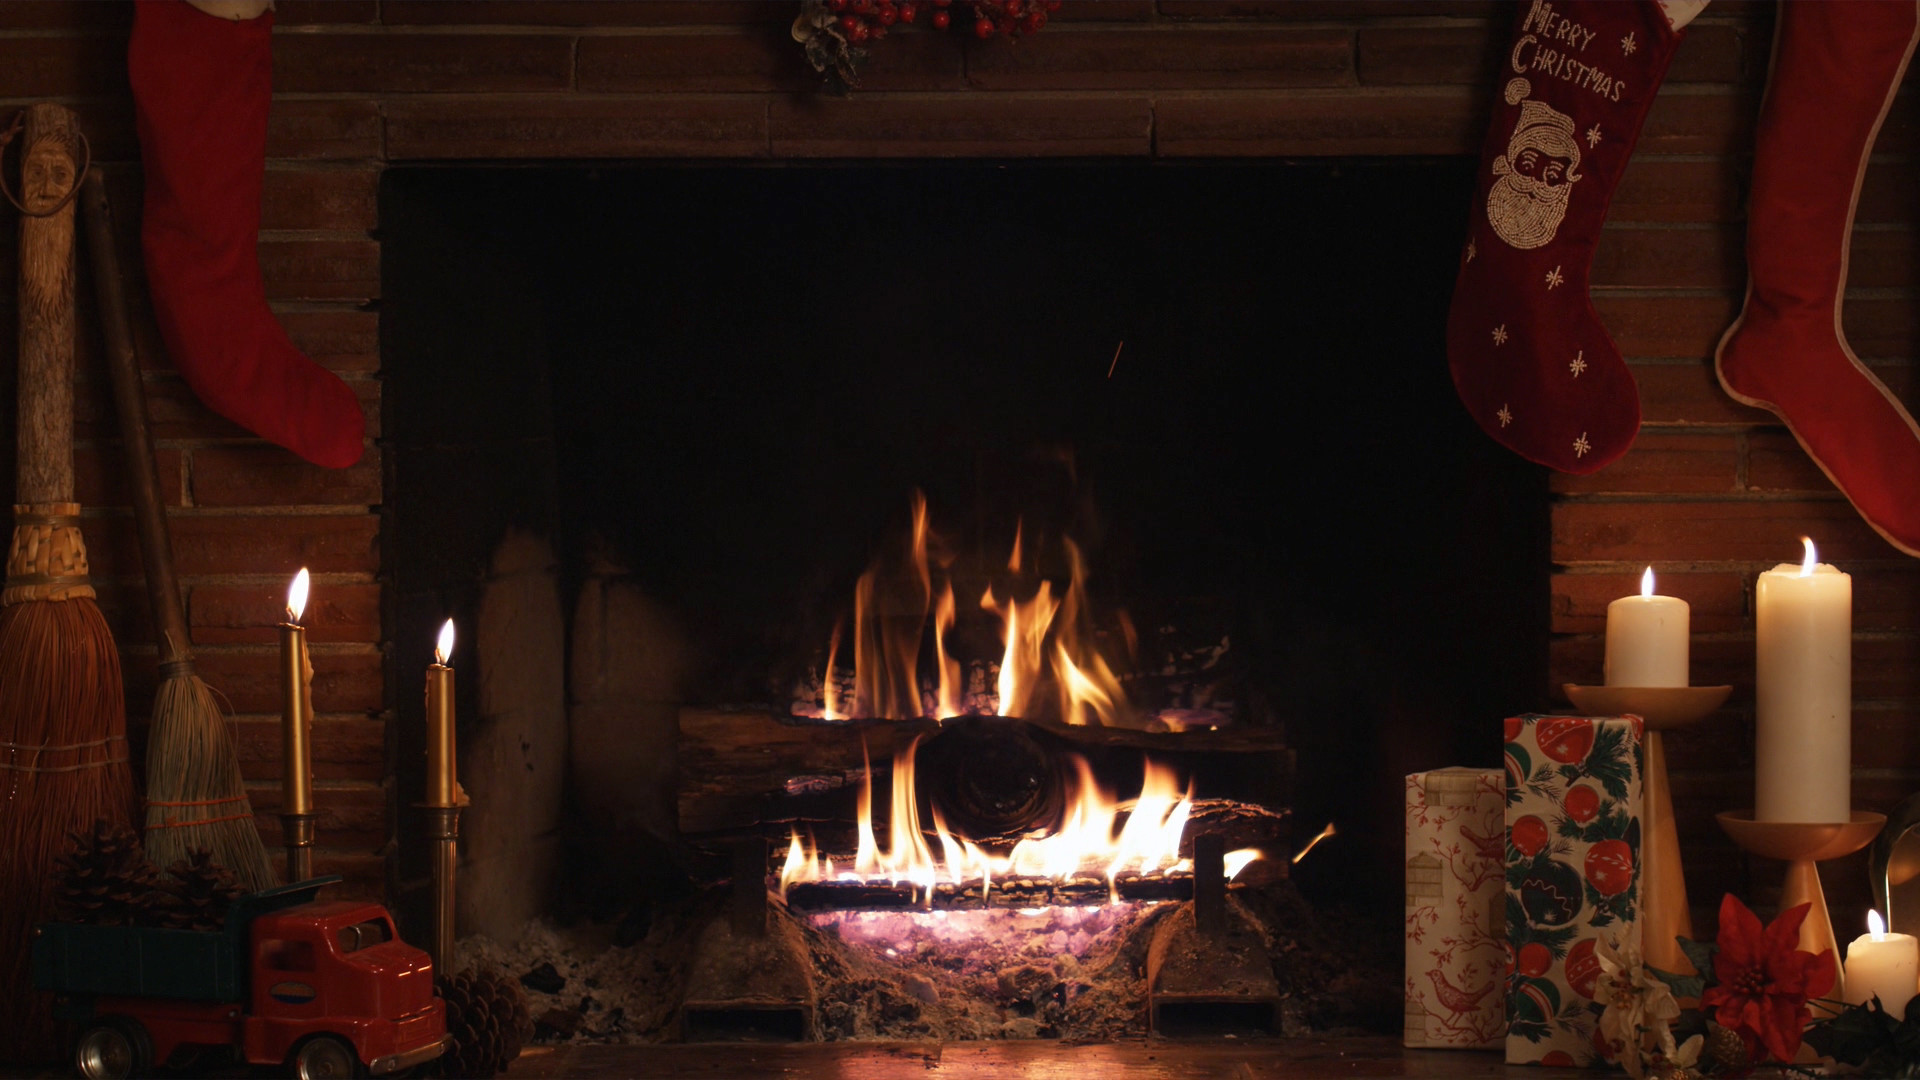 1920x1080 christmas fireplace fire holiday festive decorations Yule Wallpaper Blessed  Yule Facebook Covers